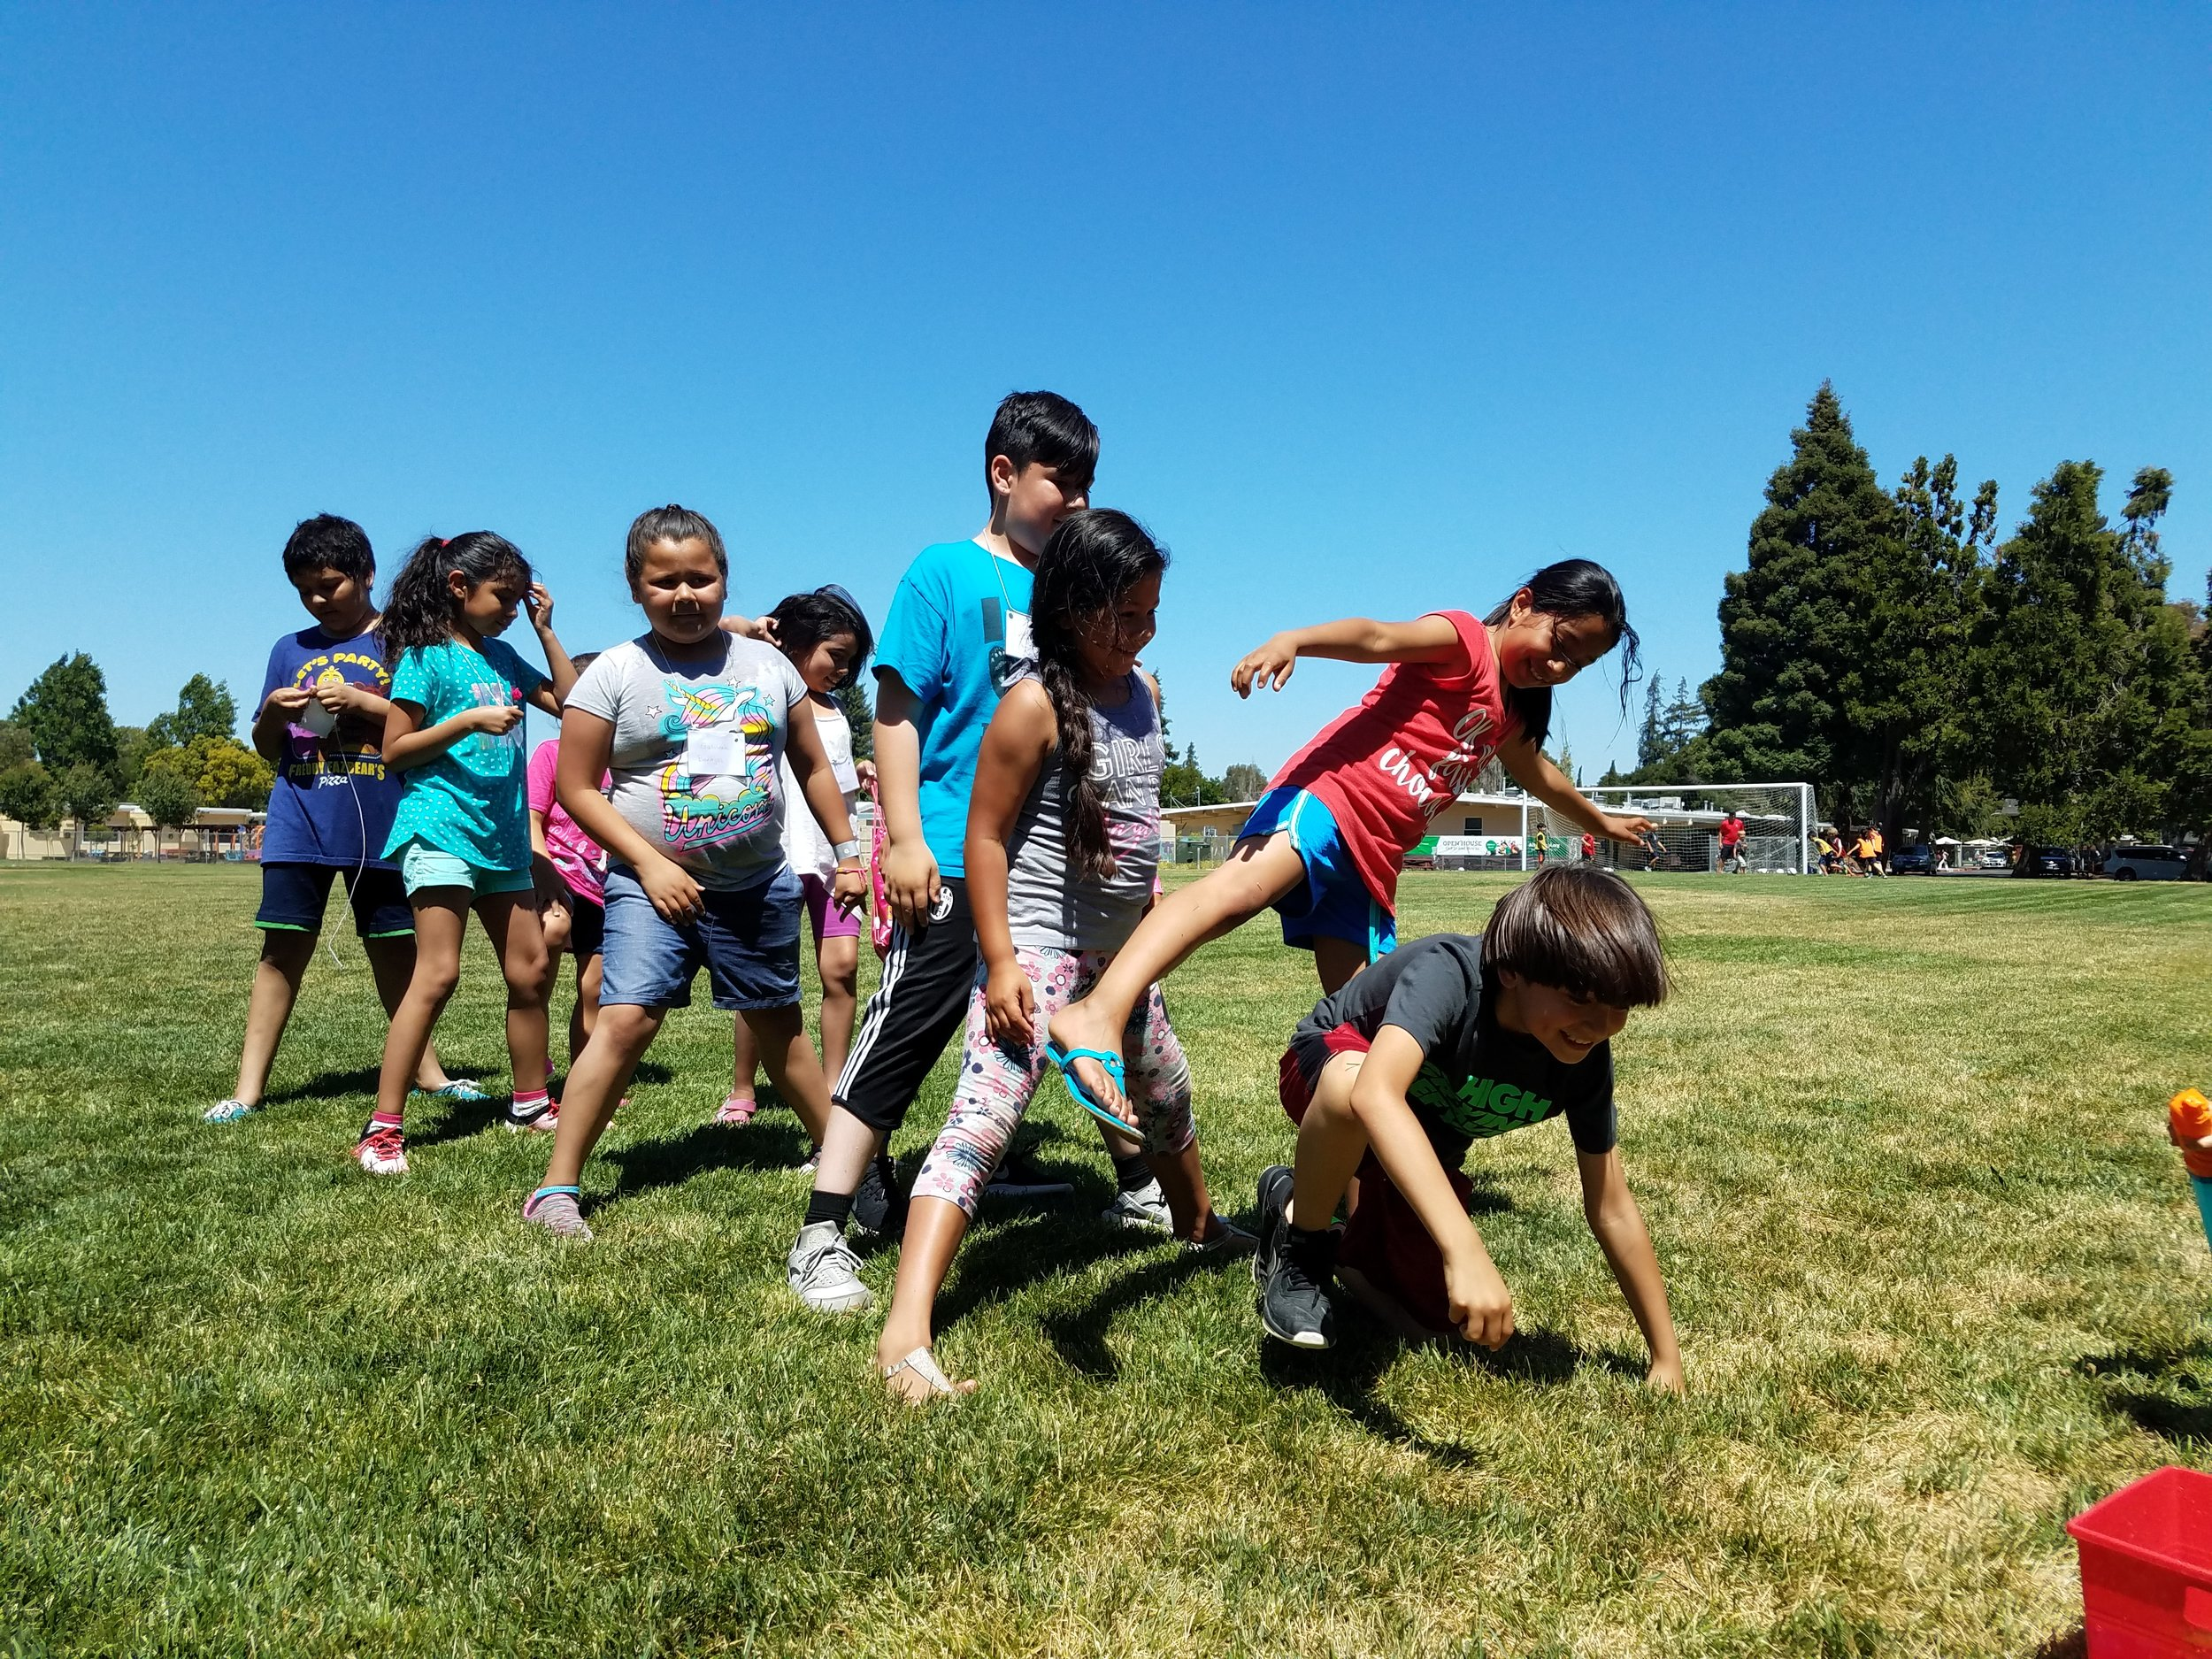 VBS Games - VBS students line up to participate in a game.